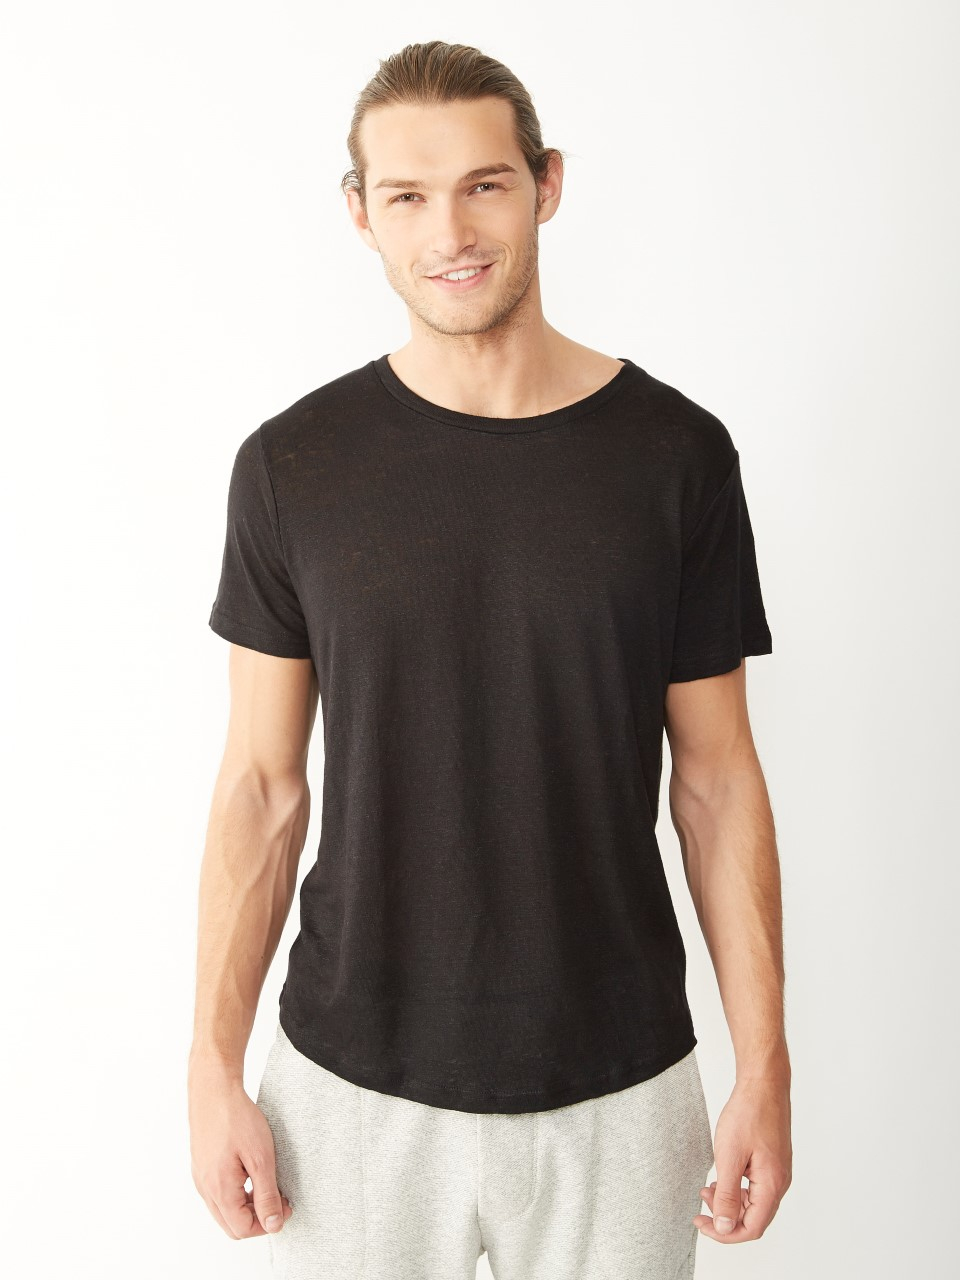 The Men's Tall Tee is manufactured by C Port and Company (model# PC61T), made of oz % preshrunk cotton*, shoulder to shoulder taping, coverseamed neck and double-needle stitch hem. *Steel is made of 90% cotton/10% polyester.